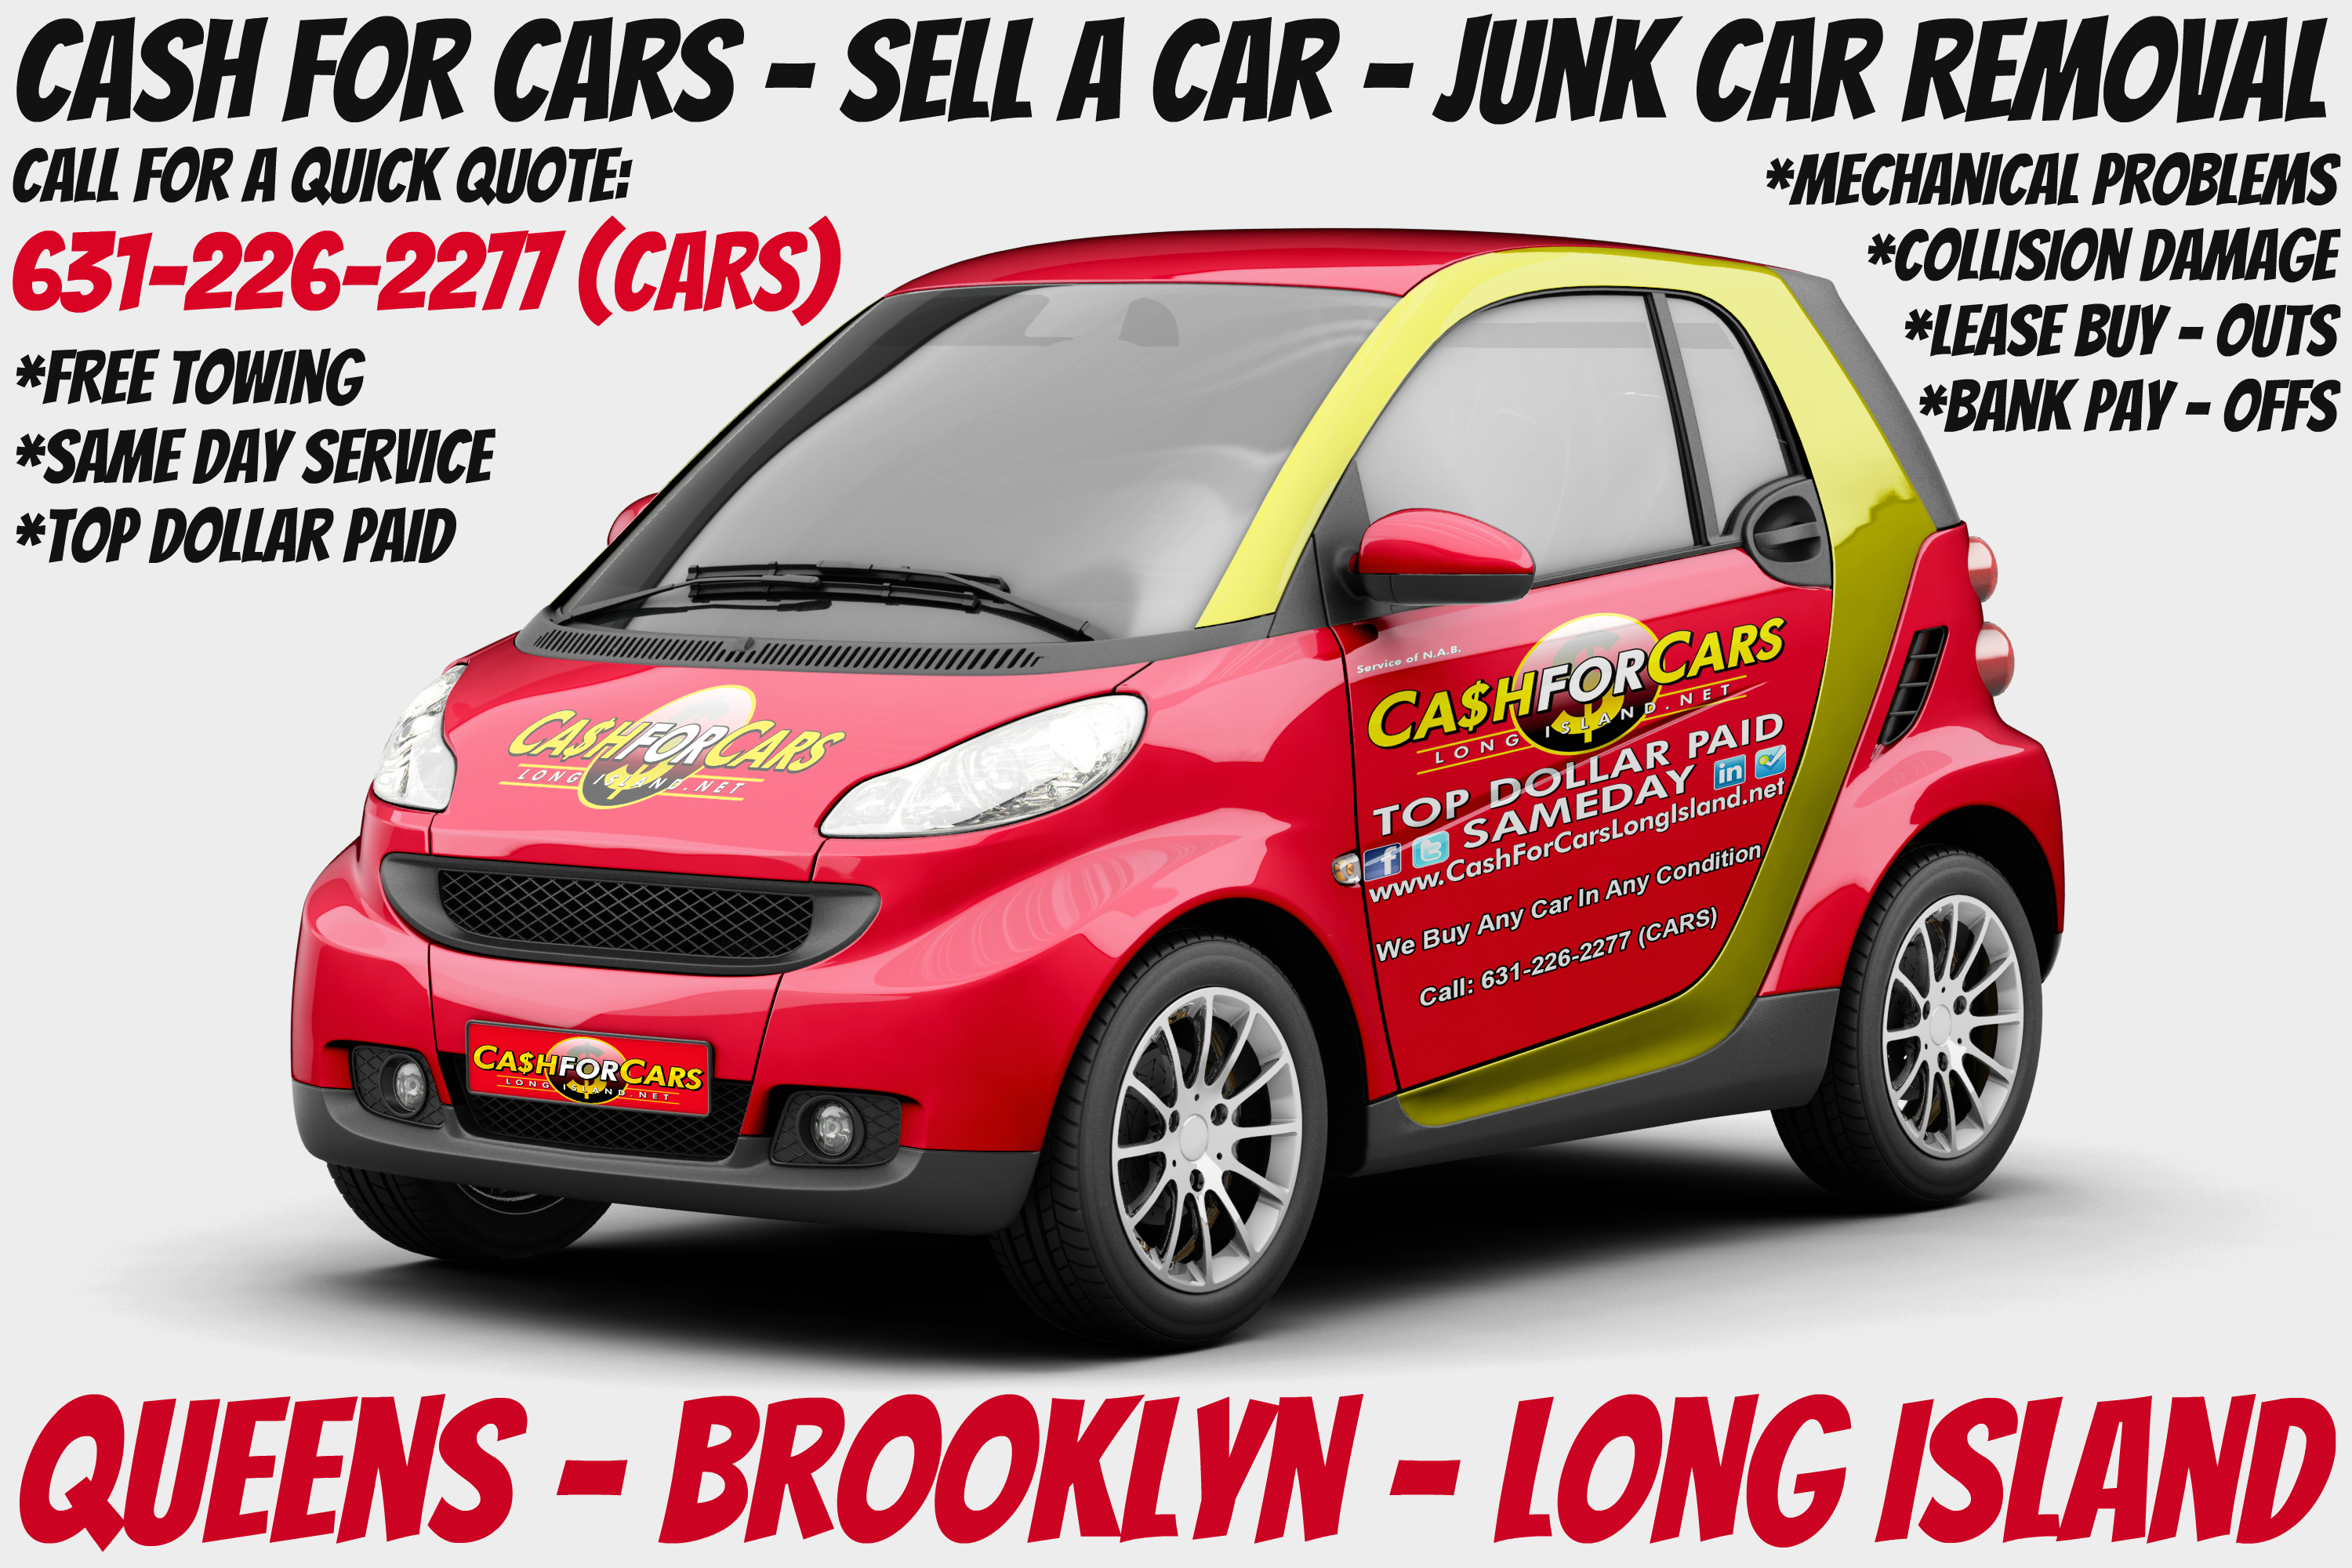 Trade Cars for Cash services in Sydney: